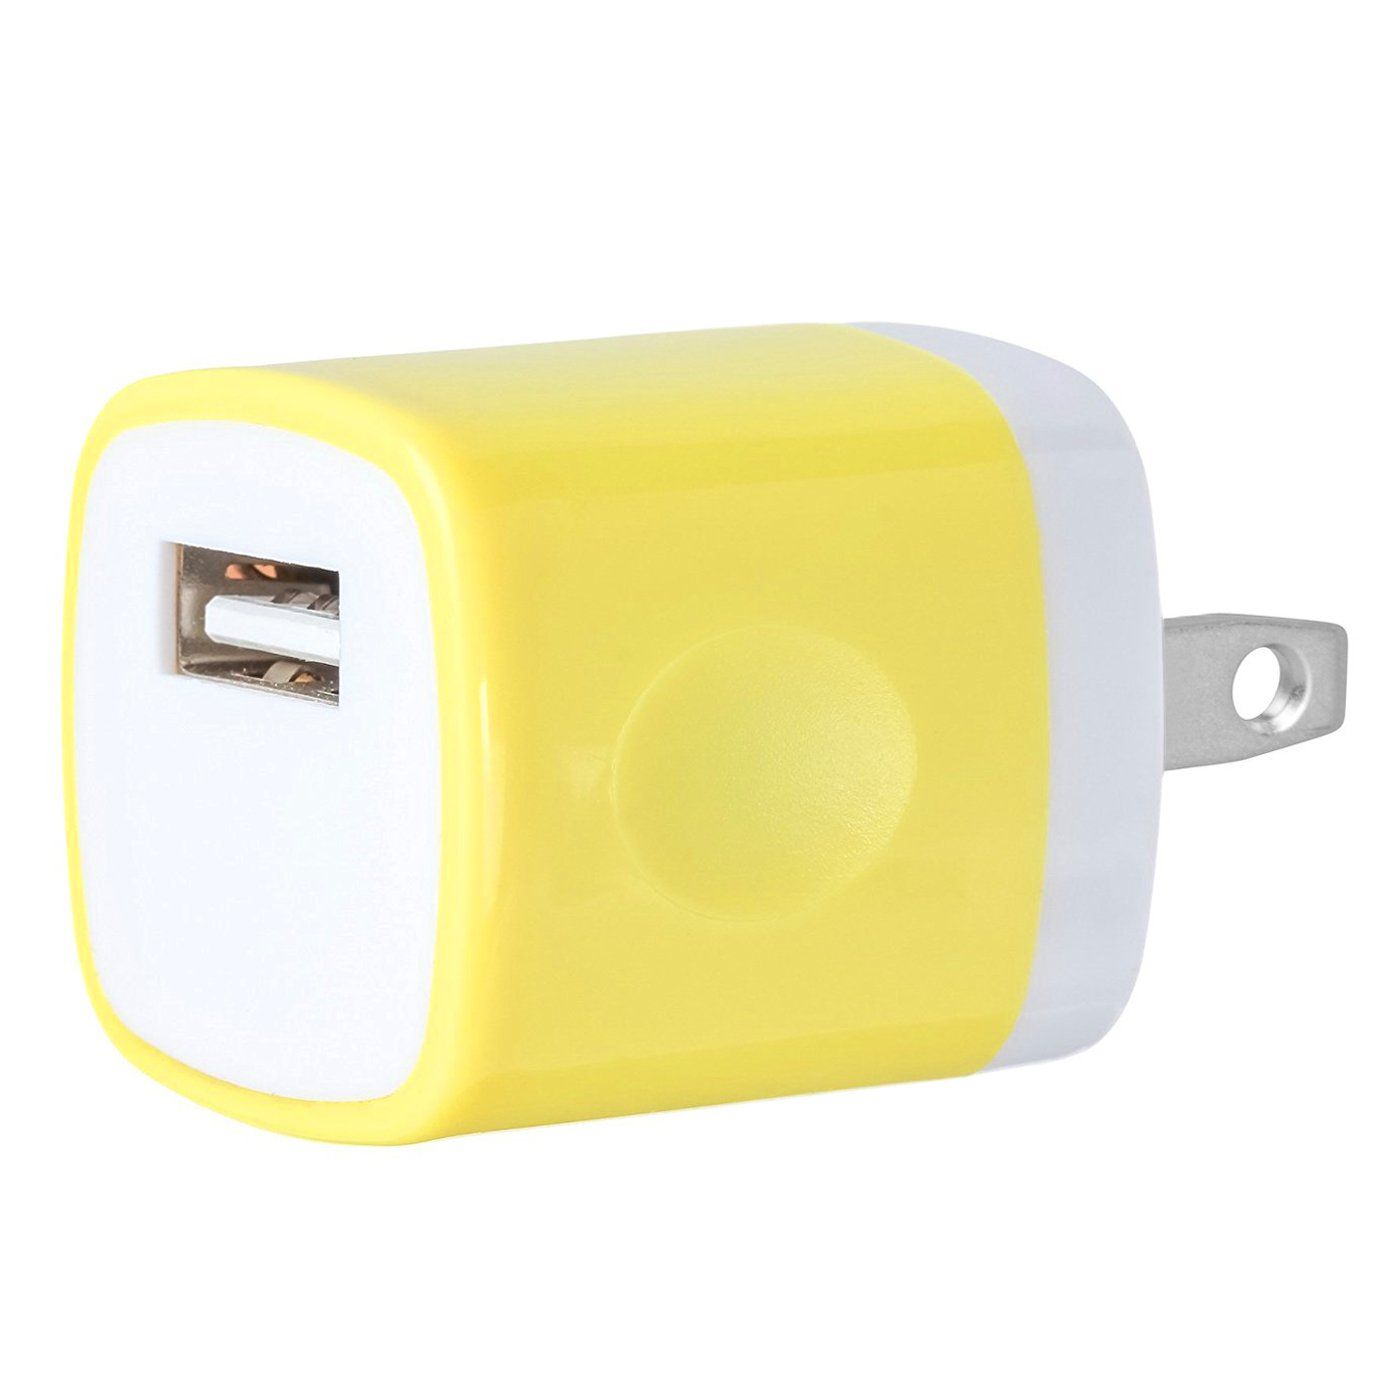 Nook Color Wall Charger Specs - The Best Charger 2018